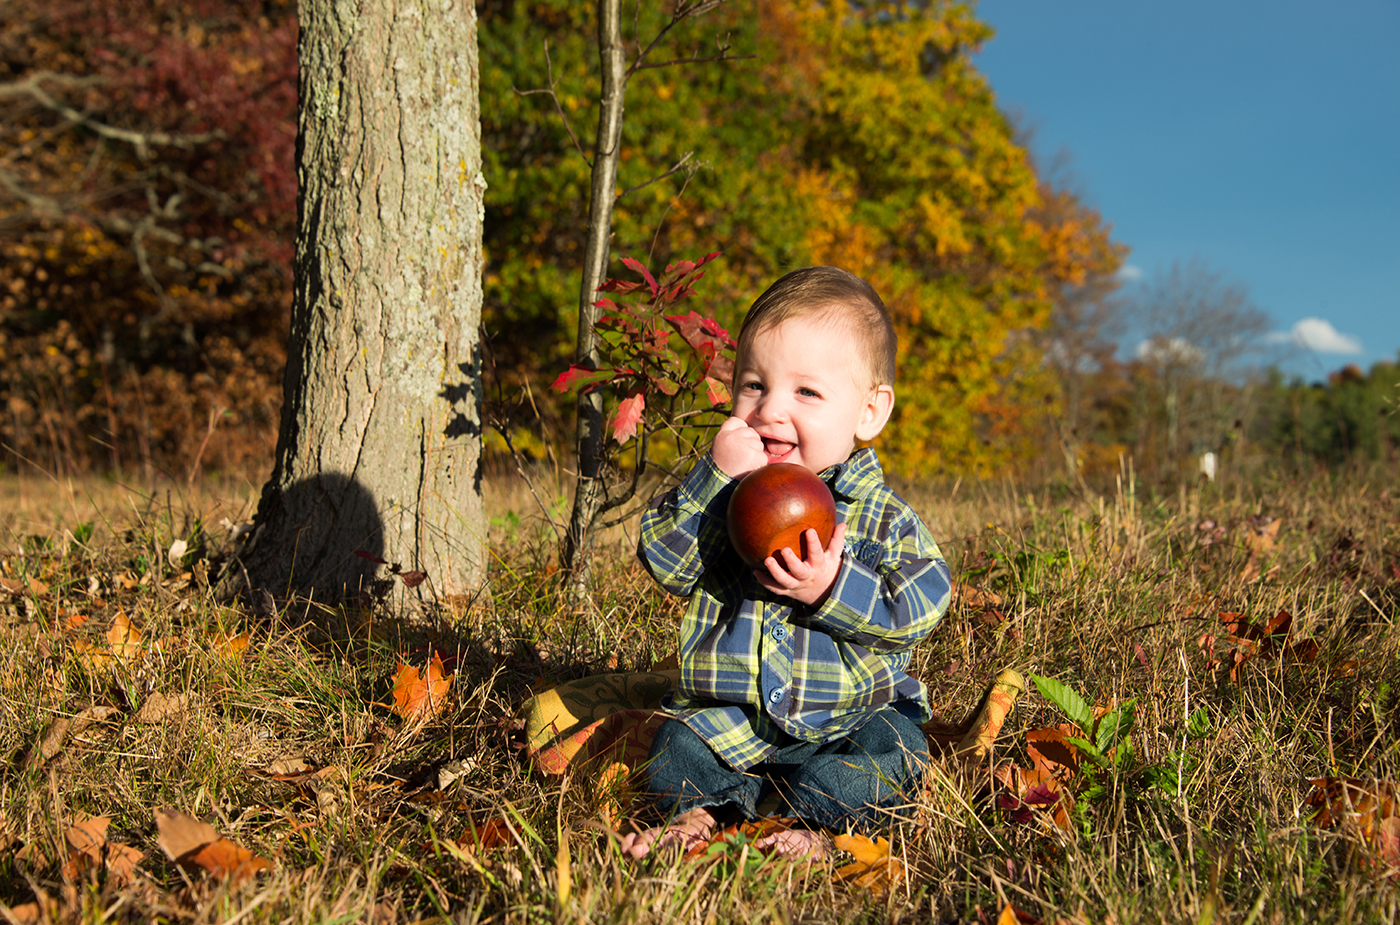 All Occasions Photography Albany NY - Family Photography Example 13 Apple Picking